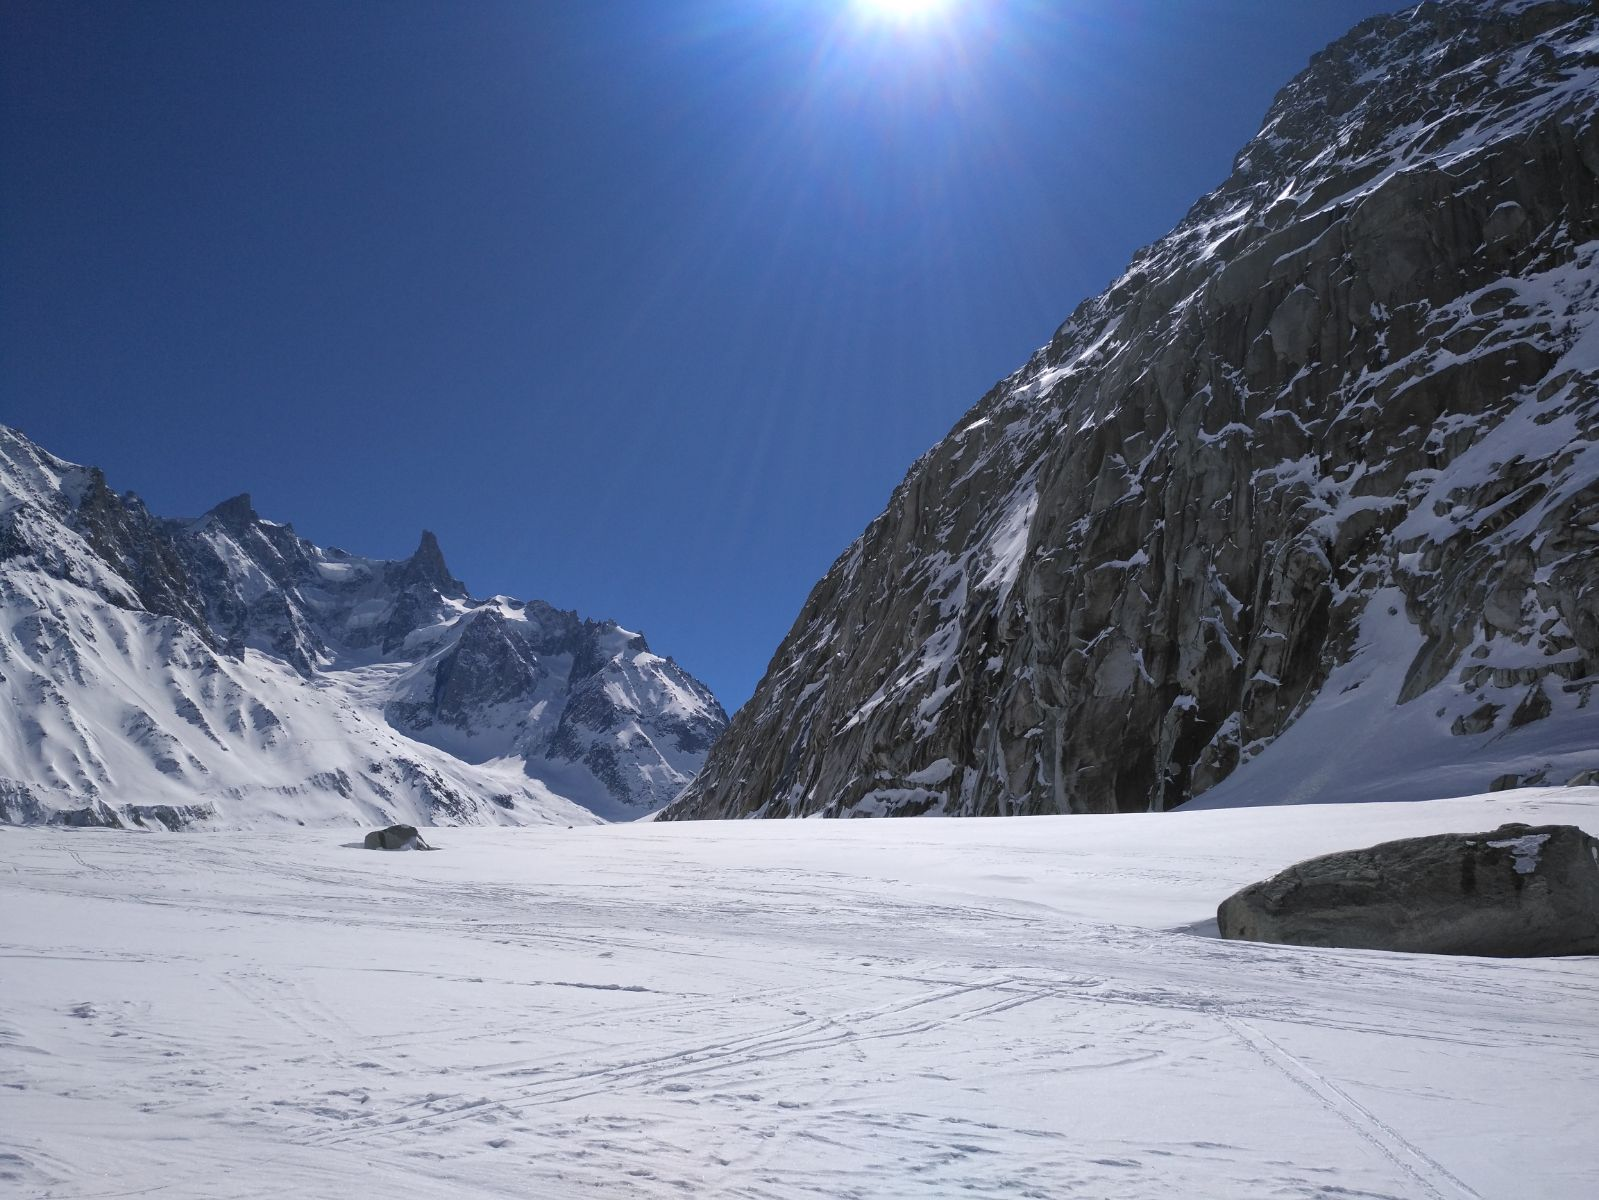 vallee blanche guide alpine proup (76)